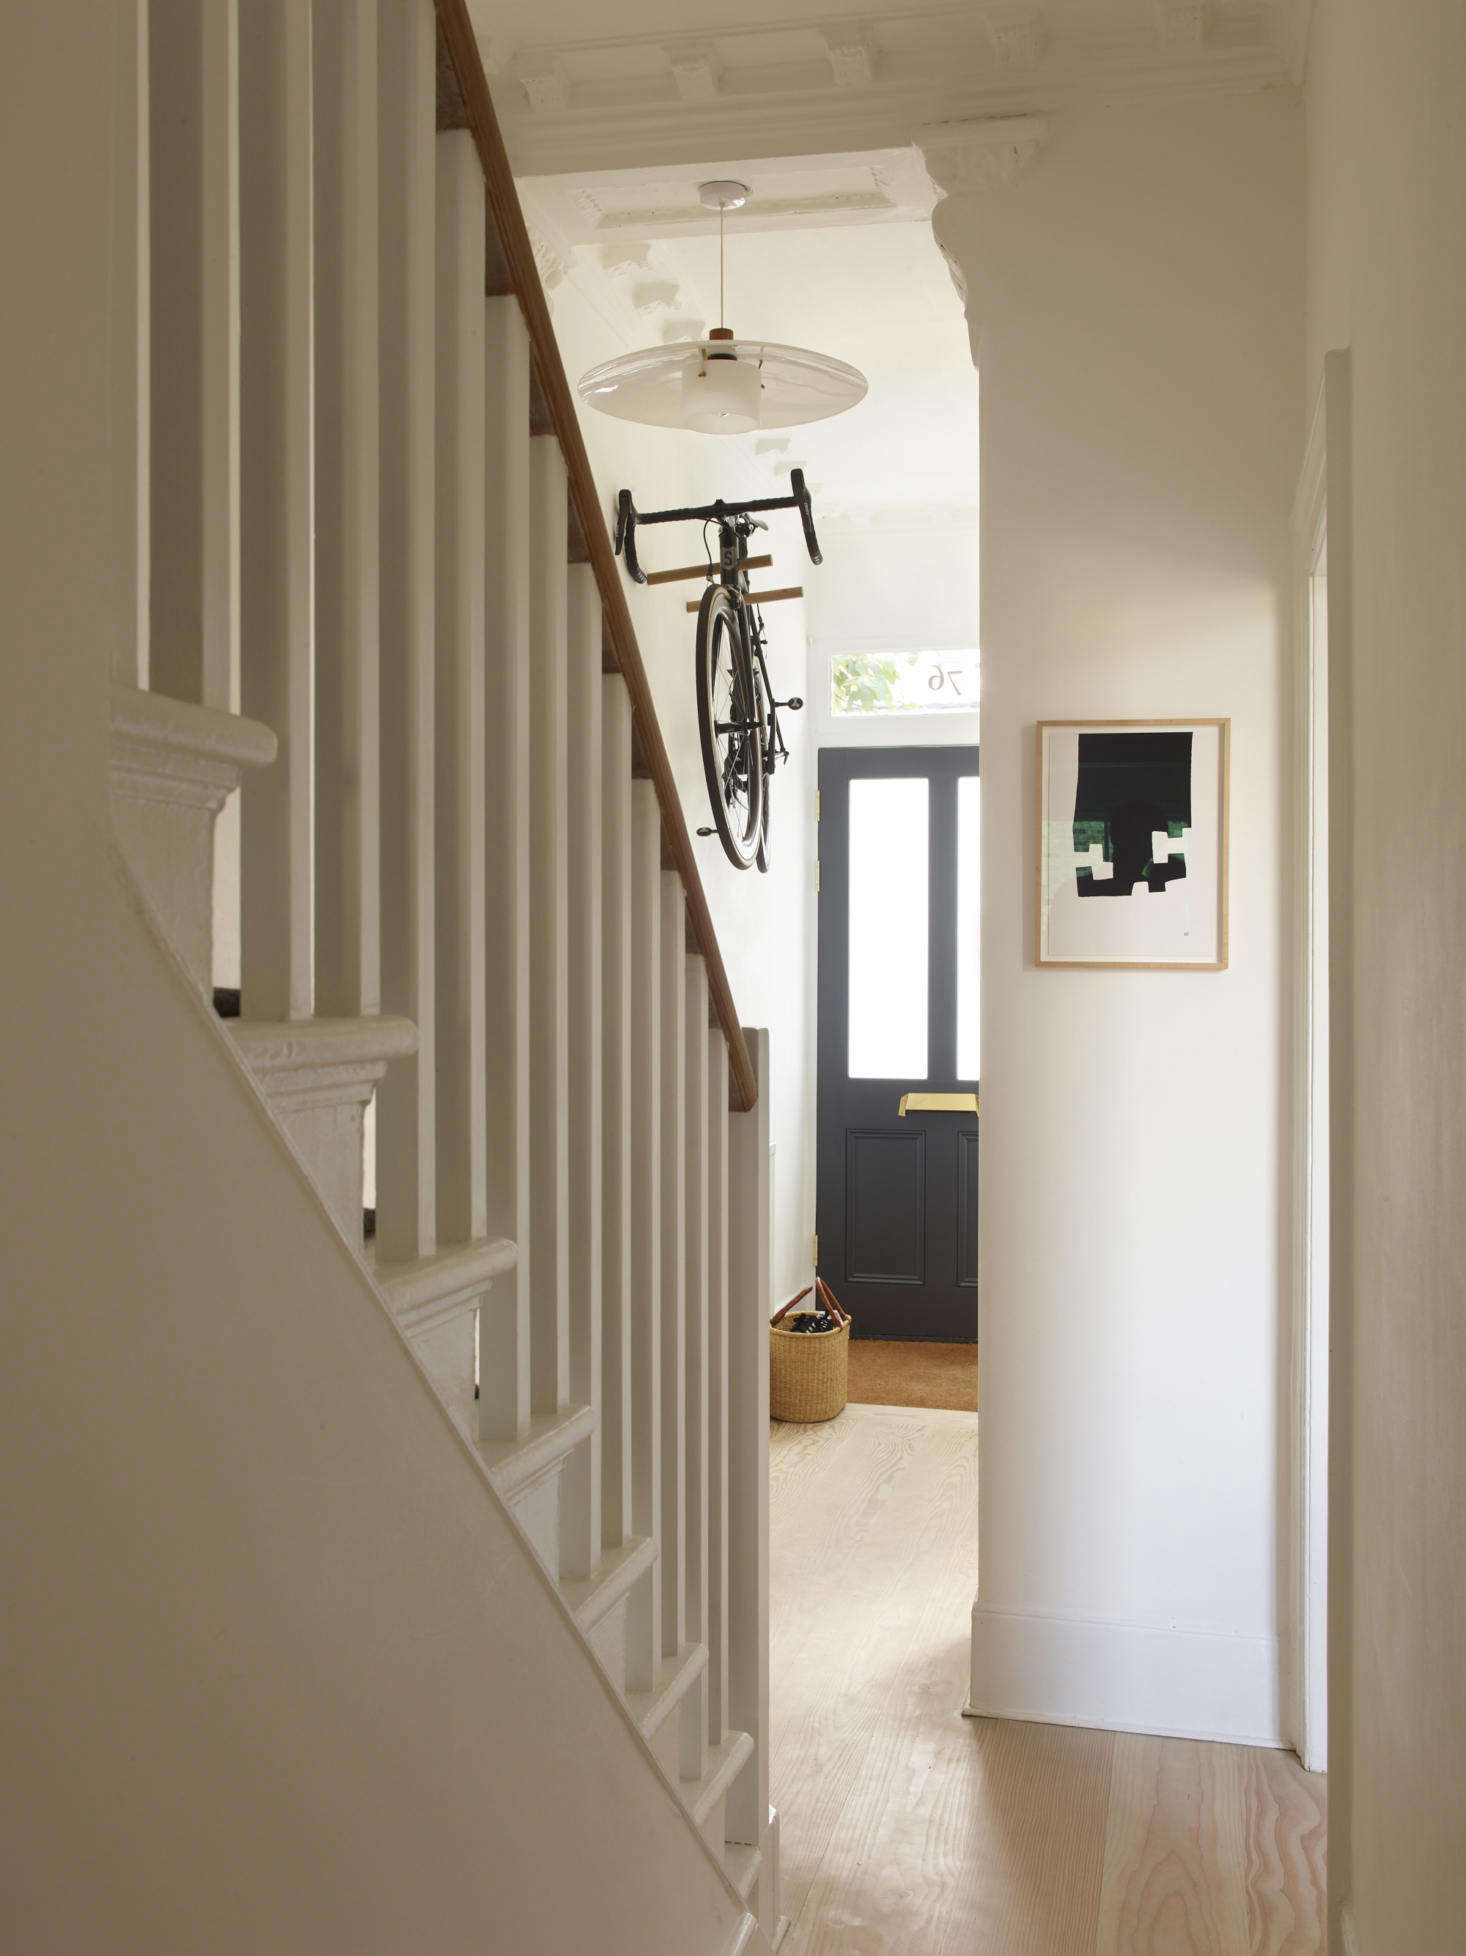 The entryway, with a glass hanging light (&#8